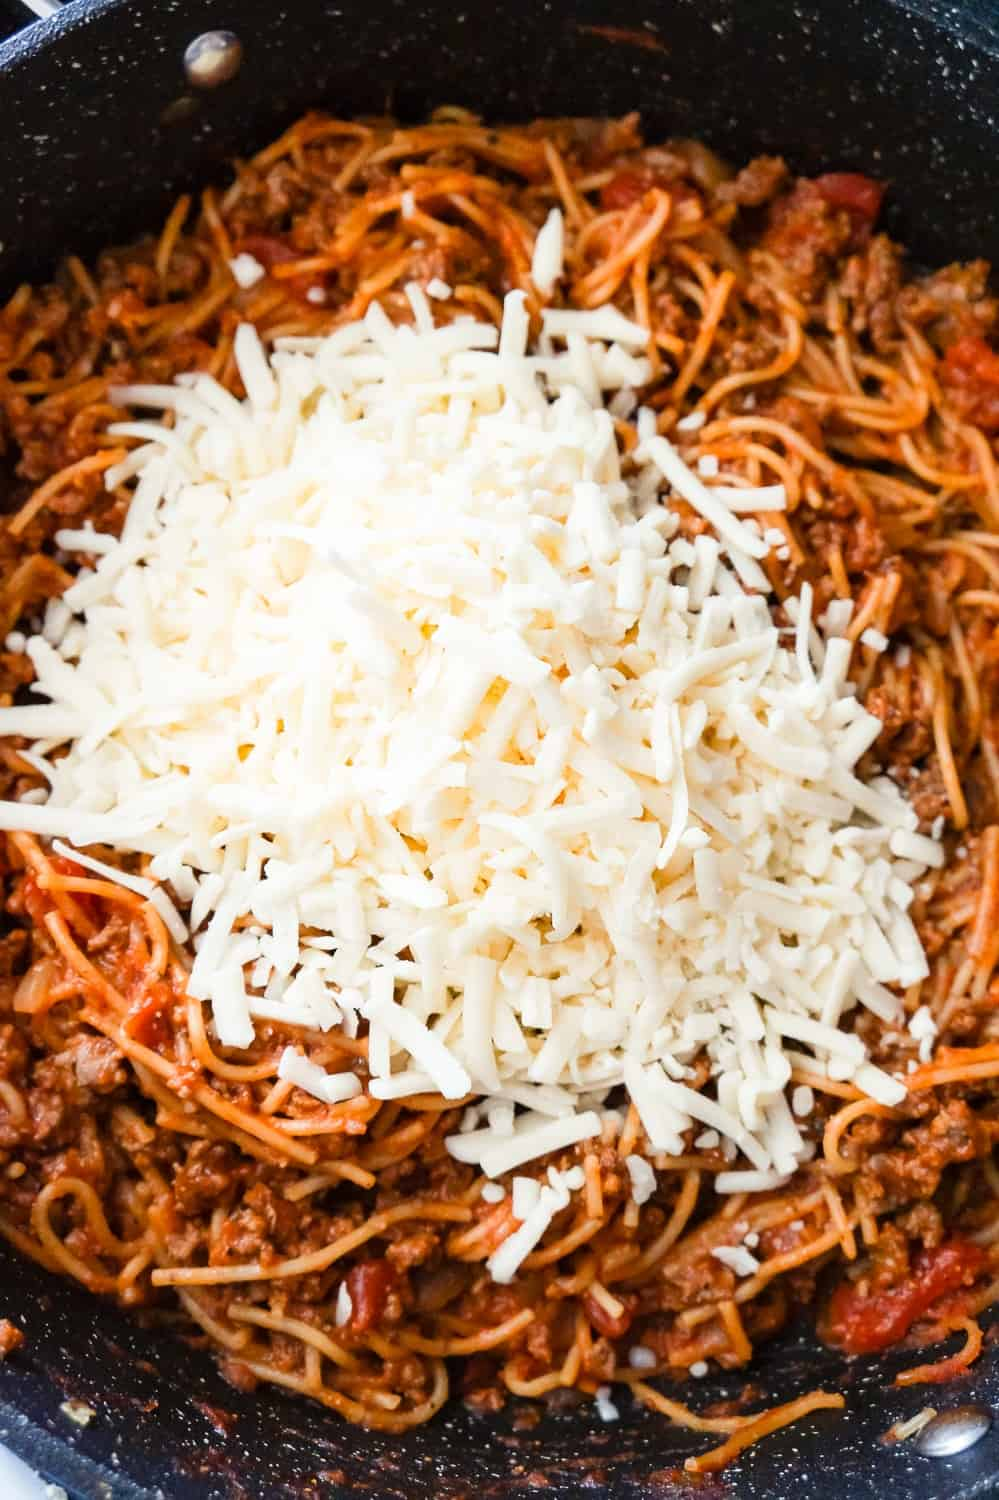 shredded mozzarella on top of spaghetti bolognese in a pan